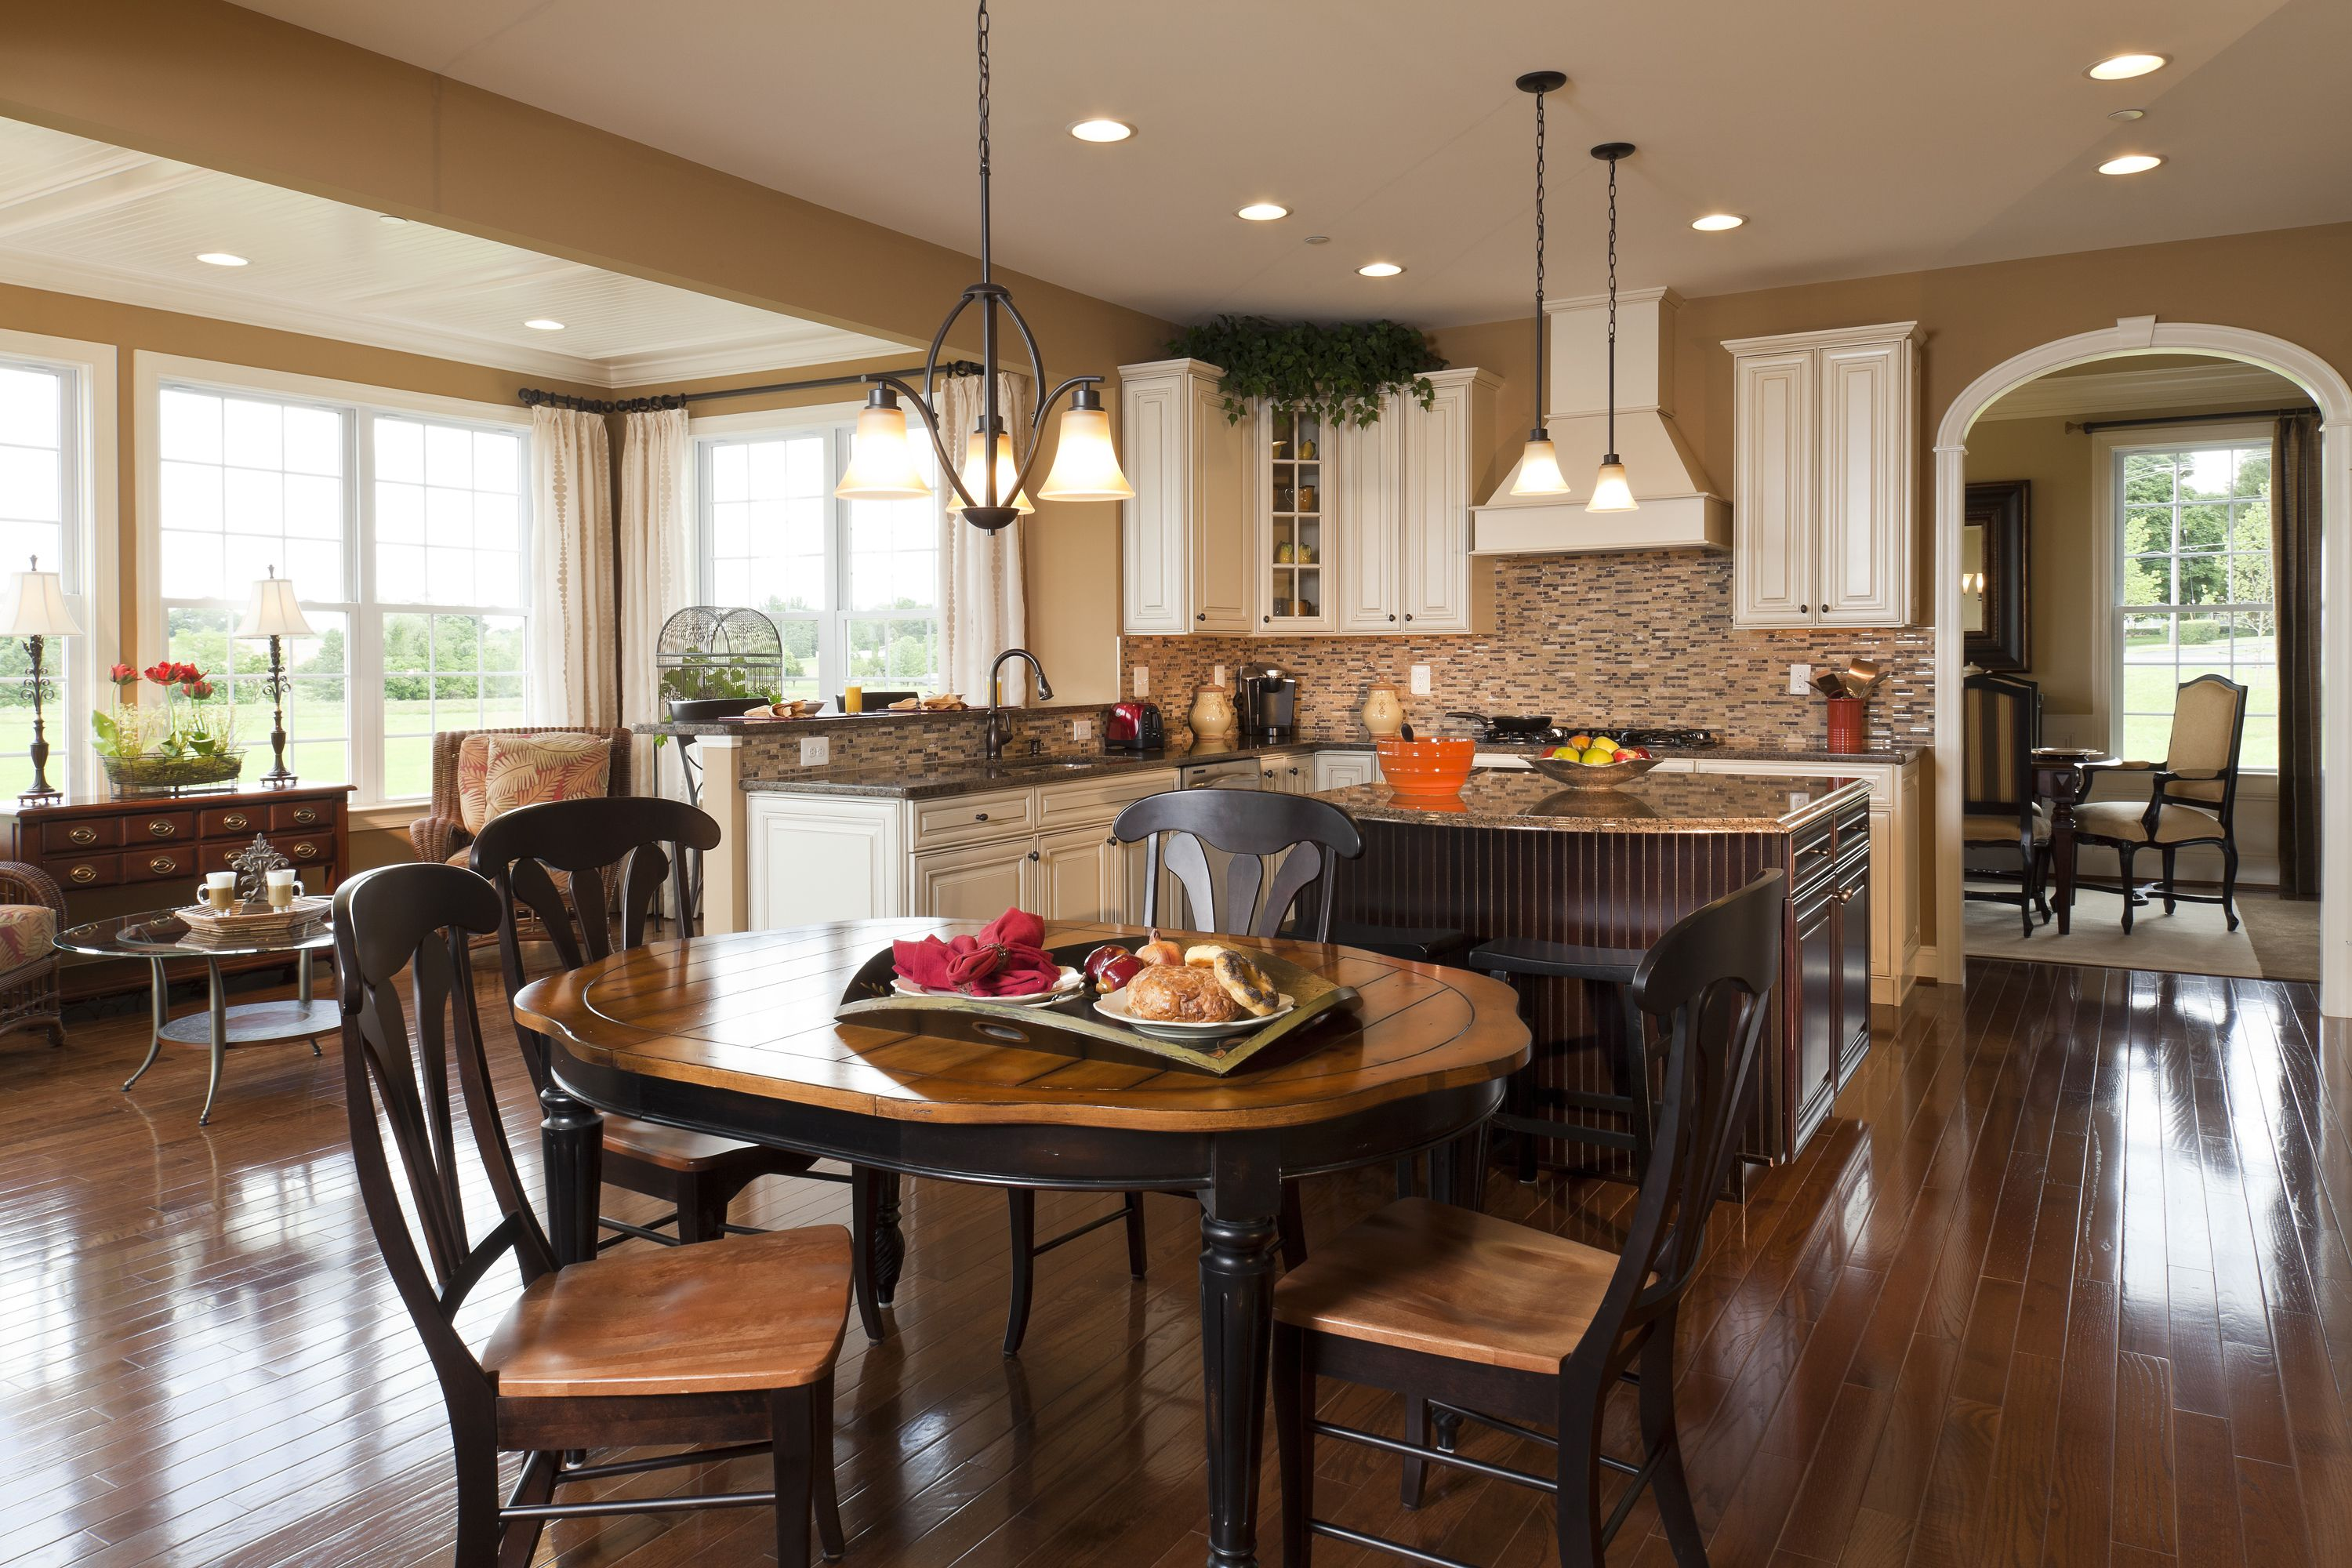 Kitchen with morning room home designs pinterest for Kitchen morning room designs